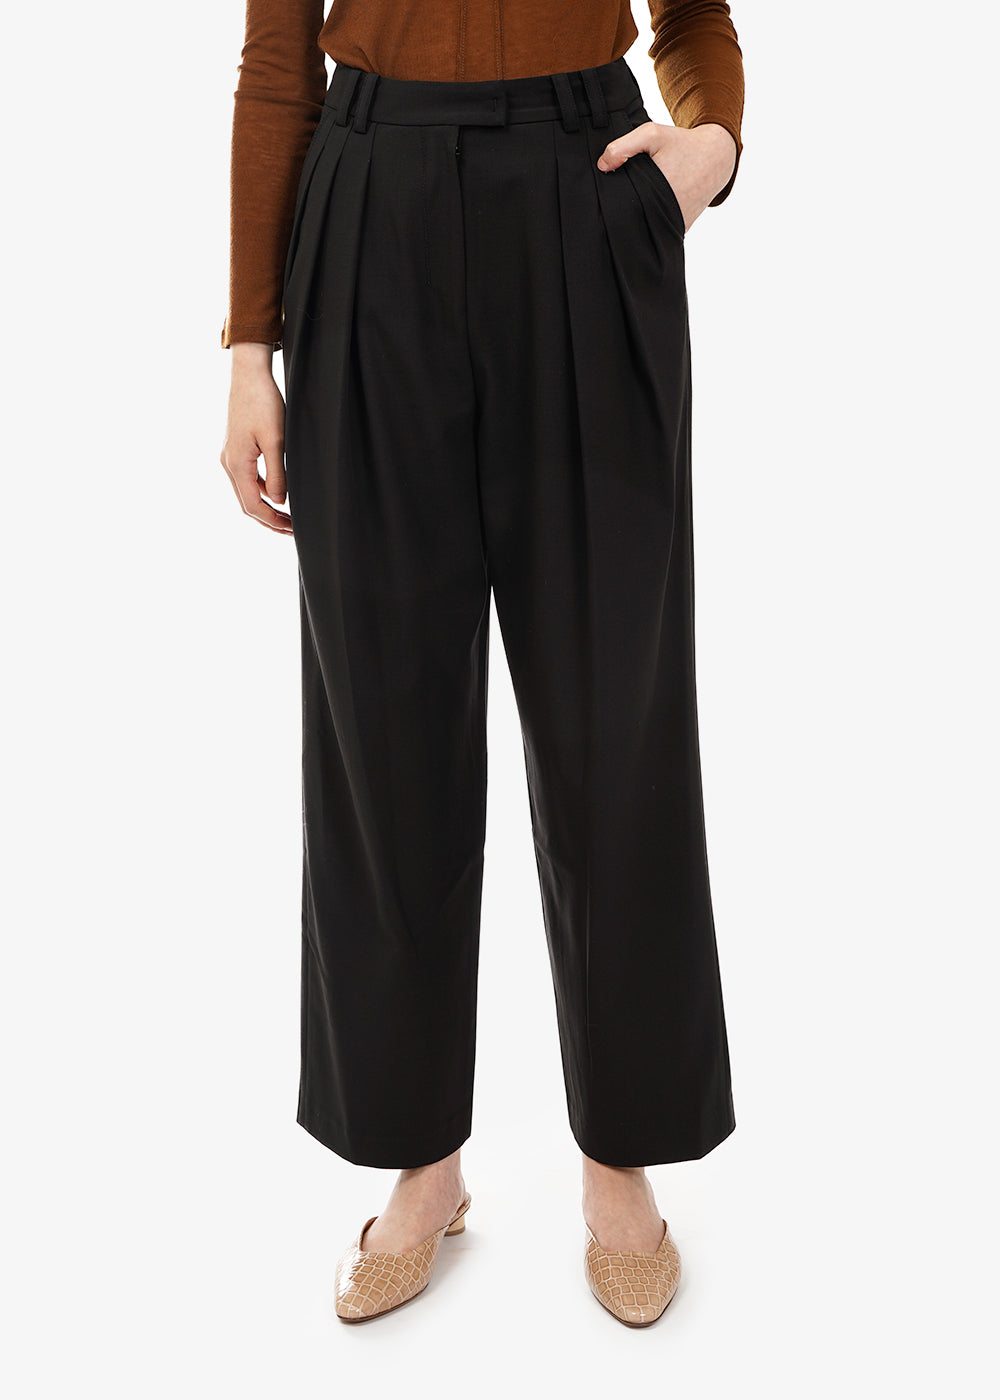 Zigzag Wide Trousers - New Classics Studios